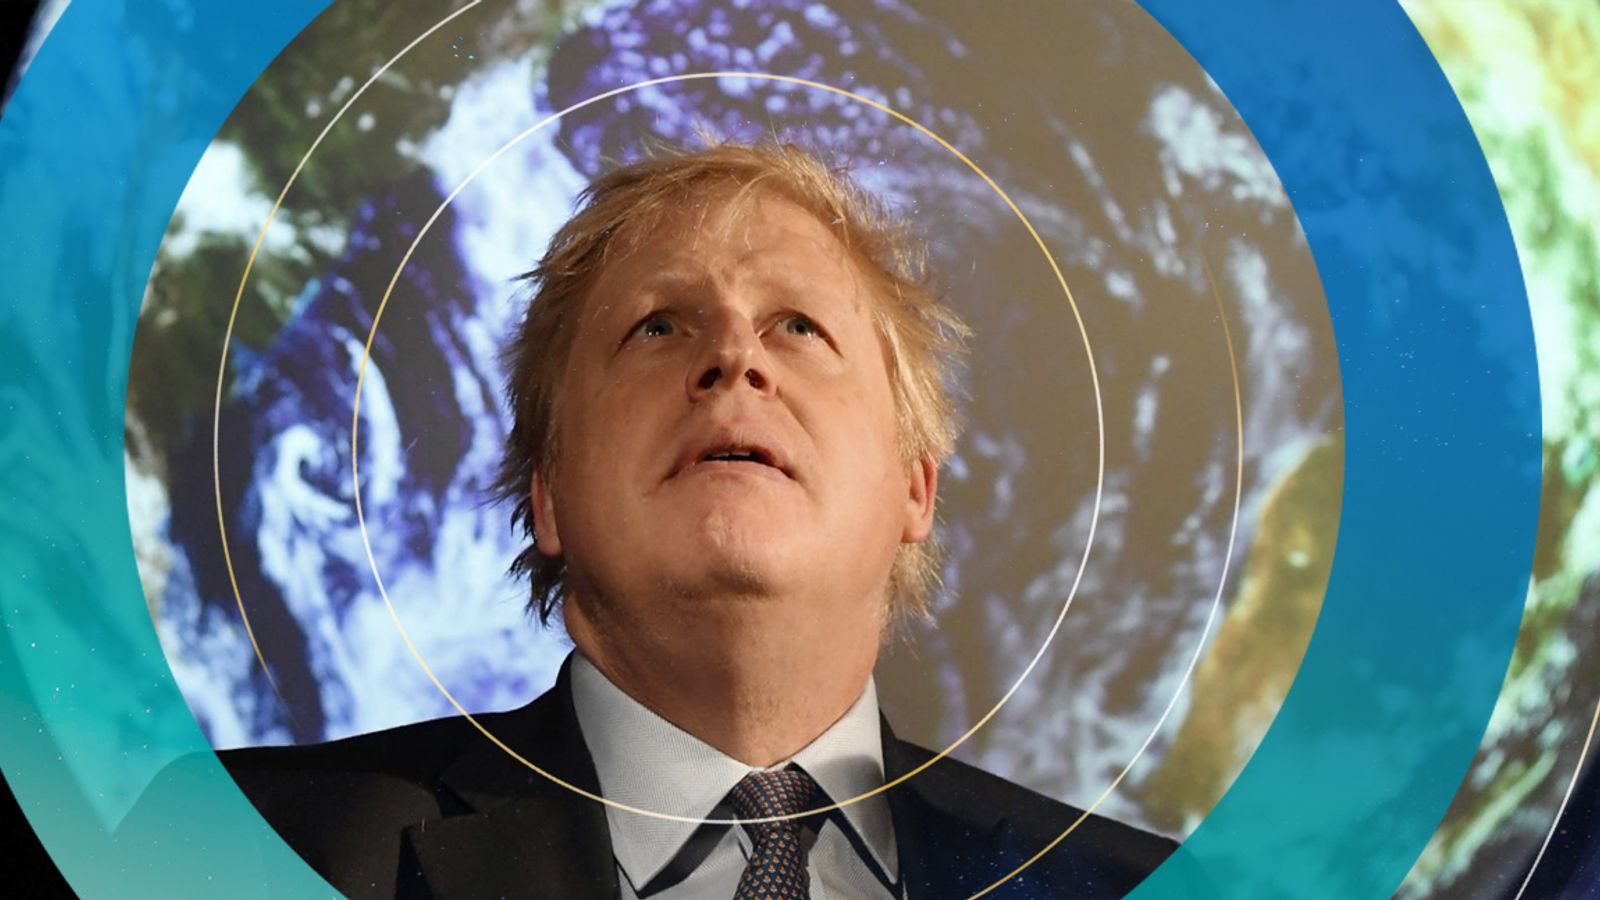 COP26: Boris Johnson to travel to UN and White House to push for climate action ahead of crunch summit